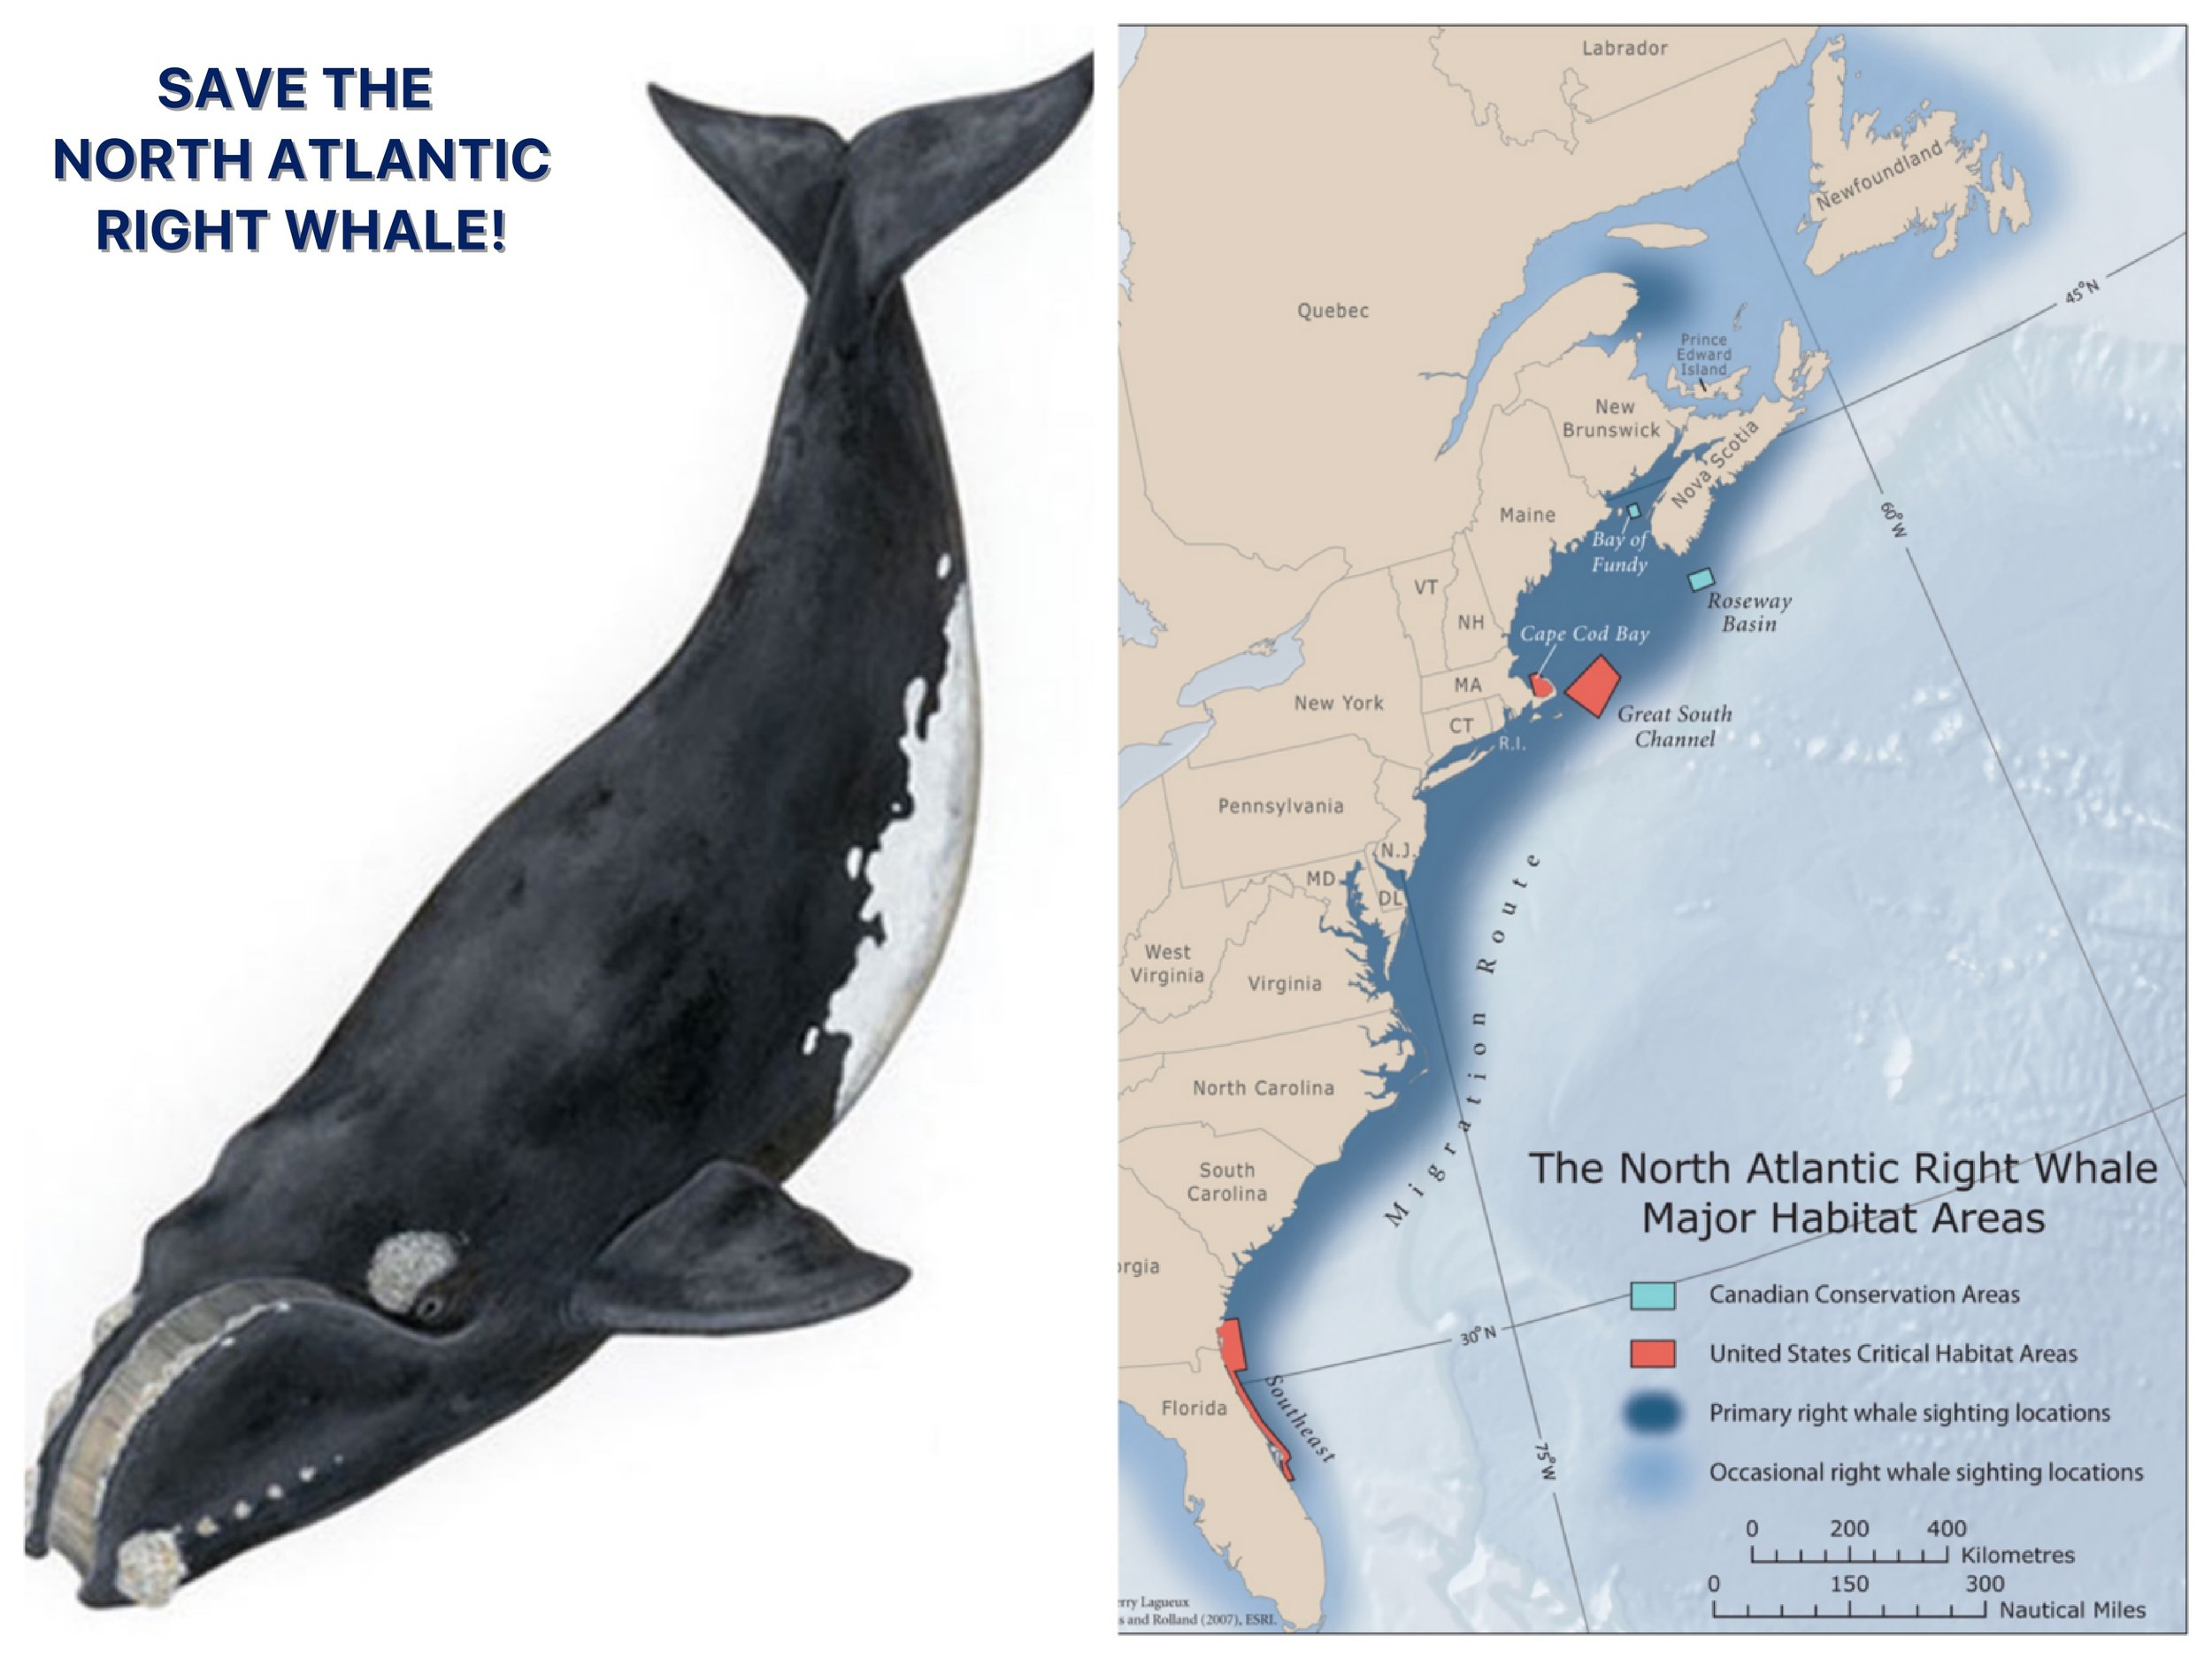 The North Atlantic right whale ( Eubalaena glacialis)  is one of the world's most endangered large whale species, with only around 450 remaining on the planet.  According to NOAA , along with  entanglement in fishing lines , vessel strikes are a major threat to North Atlantic right whales. A right whale's habitat and migration routes are close to major ports along the Atlantic seaboard and often overlap with shipping lanes, making the whales vulnerable to collisions with ships. In addition, underwater noise pollution interrupts the normal behavior of right whales and interferes with their communication.